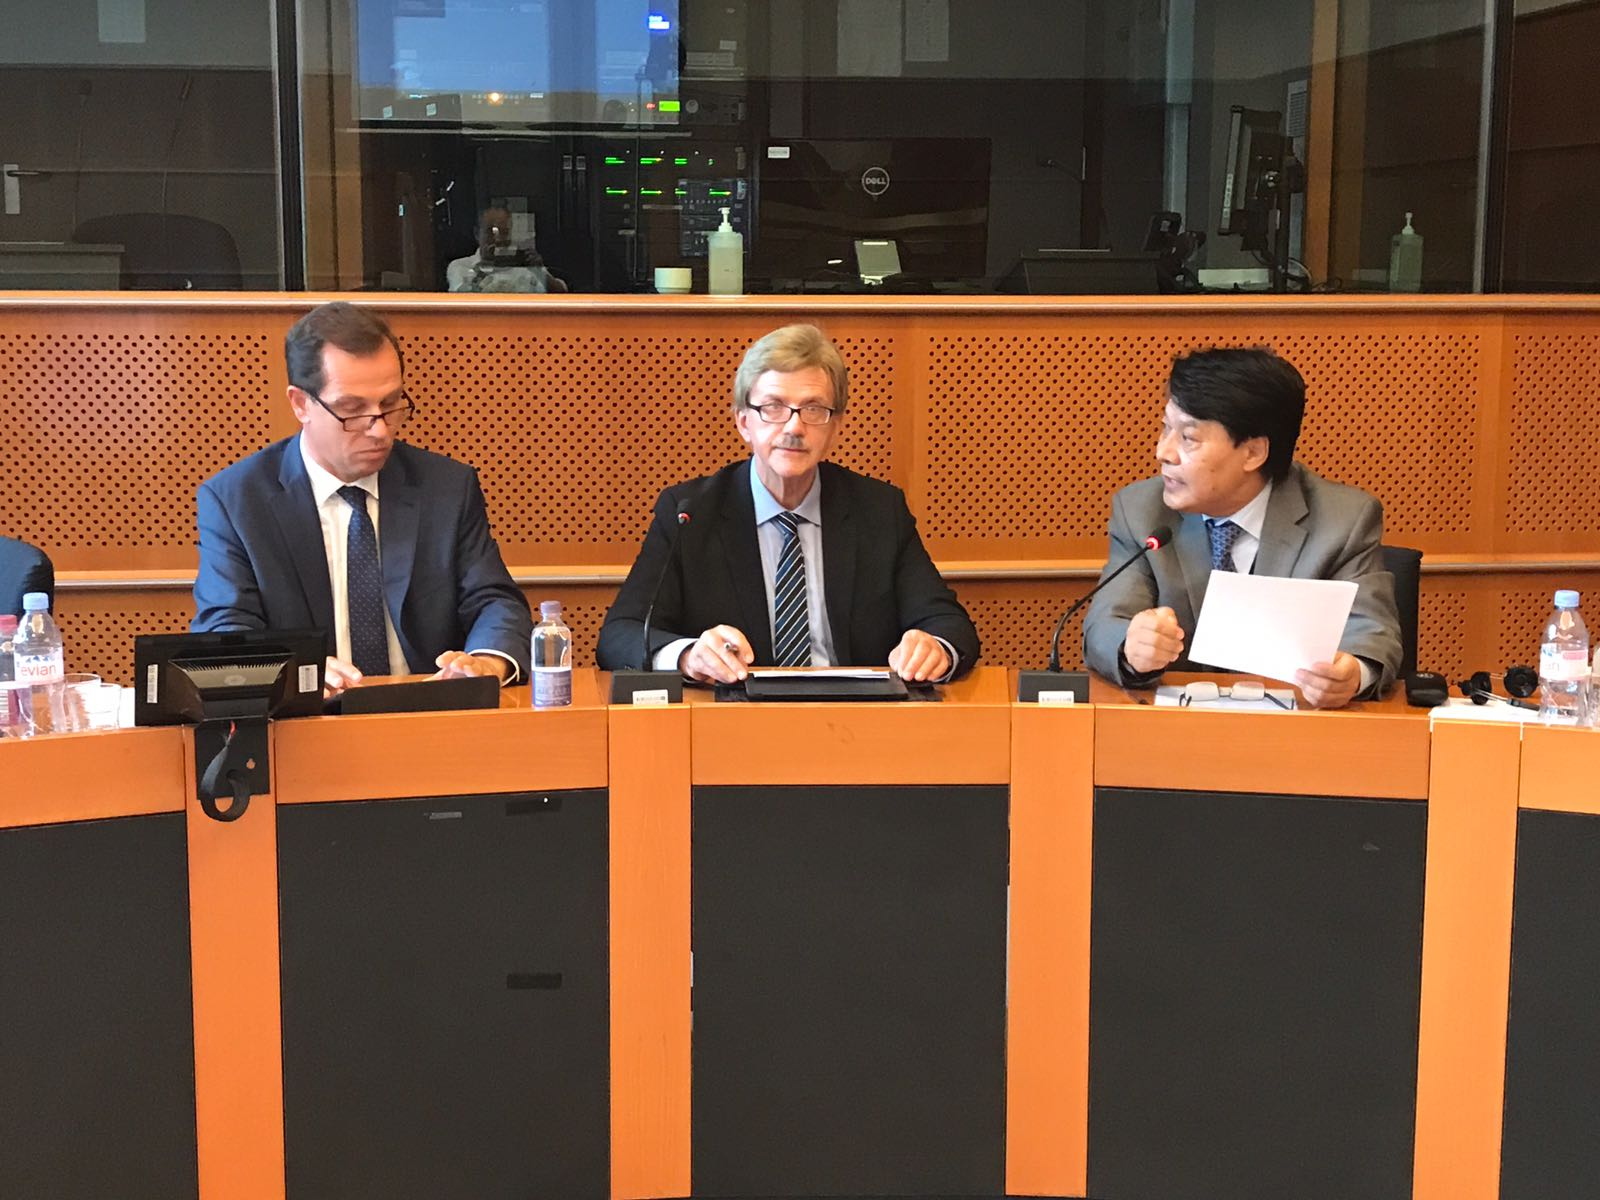 campaign activities for tibet in european parliament discussed central tibetan administration. Black Bedroom Furniture Sets. Home Design Ideas